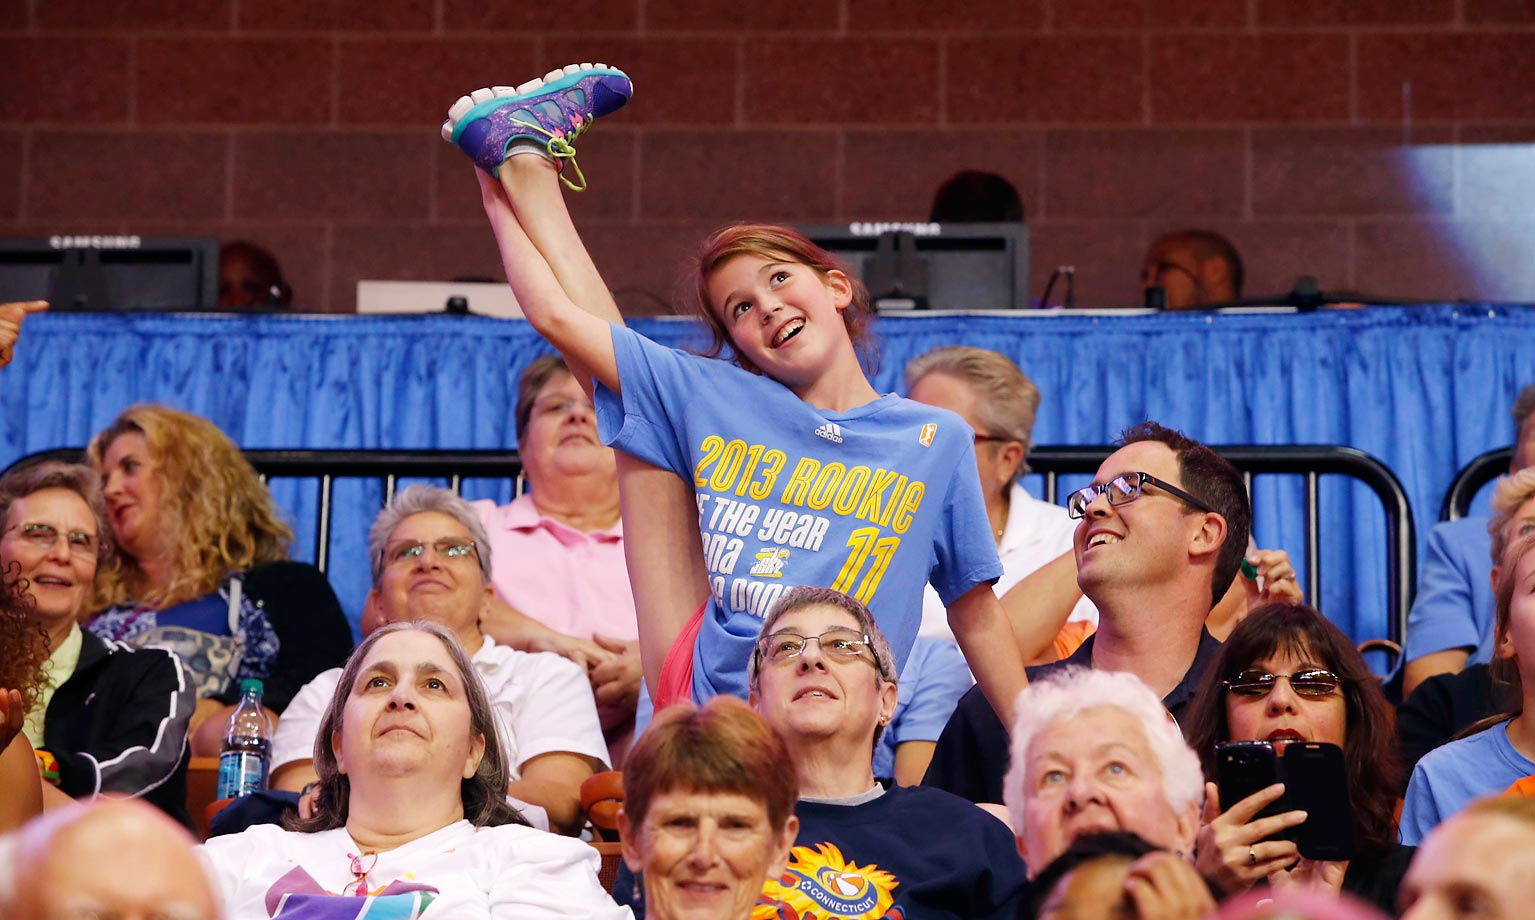 A fan cheers during the WNBA All-Star Game at the Mohegan Sun Arena in Uncasville, Conn.